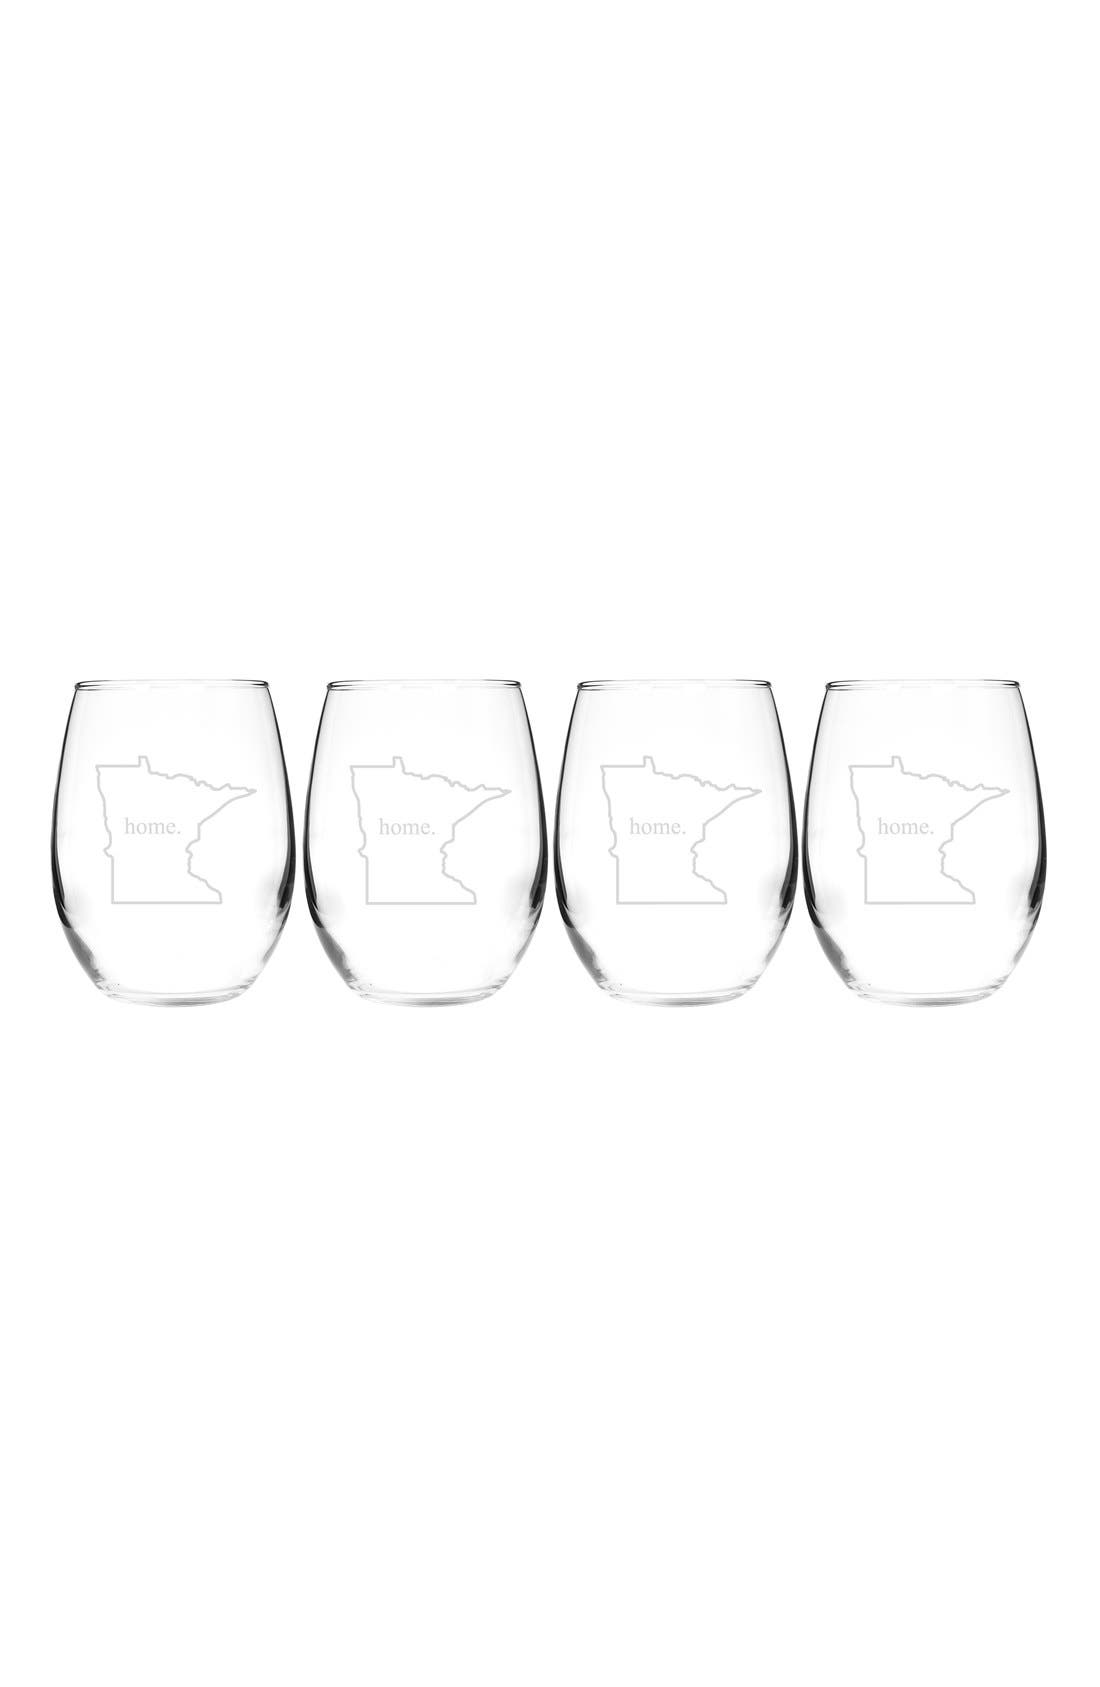 Home State Set of 4 Stemless Wine Glasses,                             Main thumbnail 24, color,